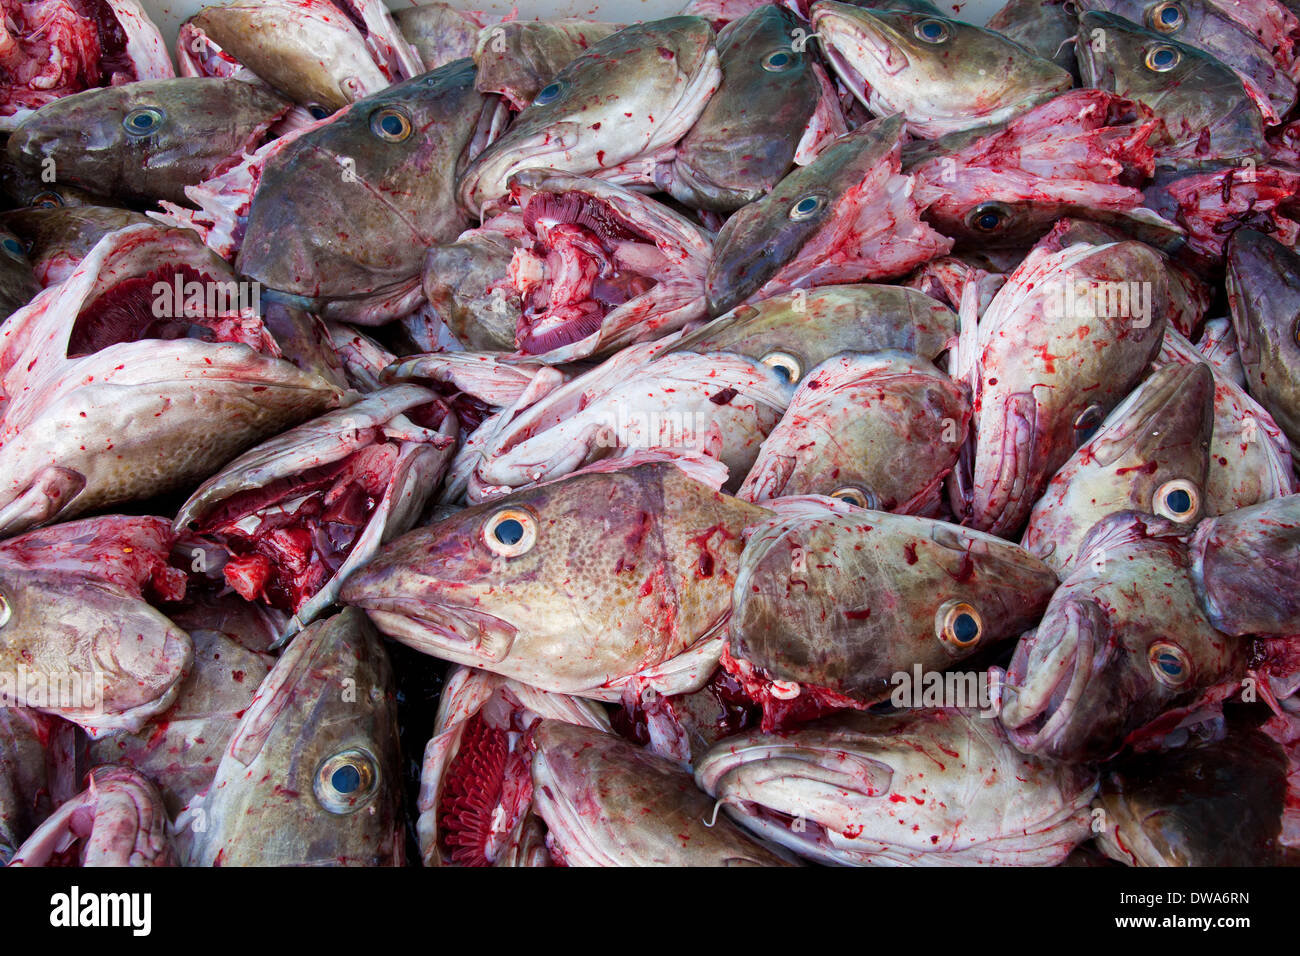 Close up of heap of Atlantic Cod (Gadus morhua) fish heads cut off for drying, Lofoten, Norway - Stock Image